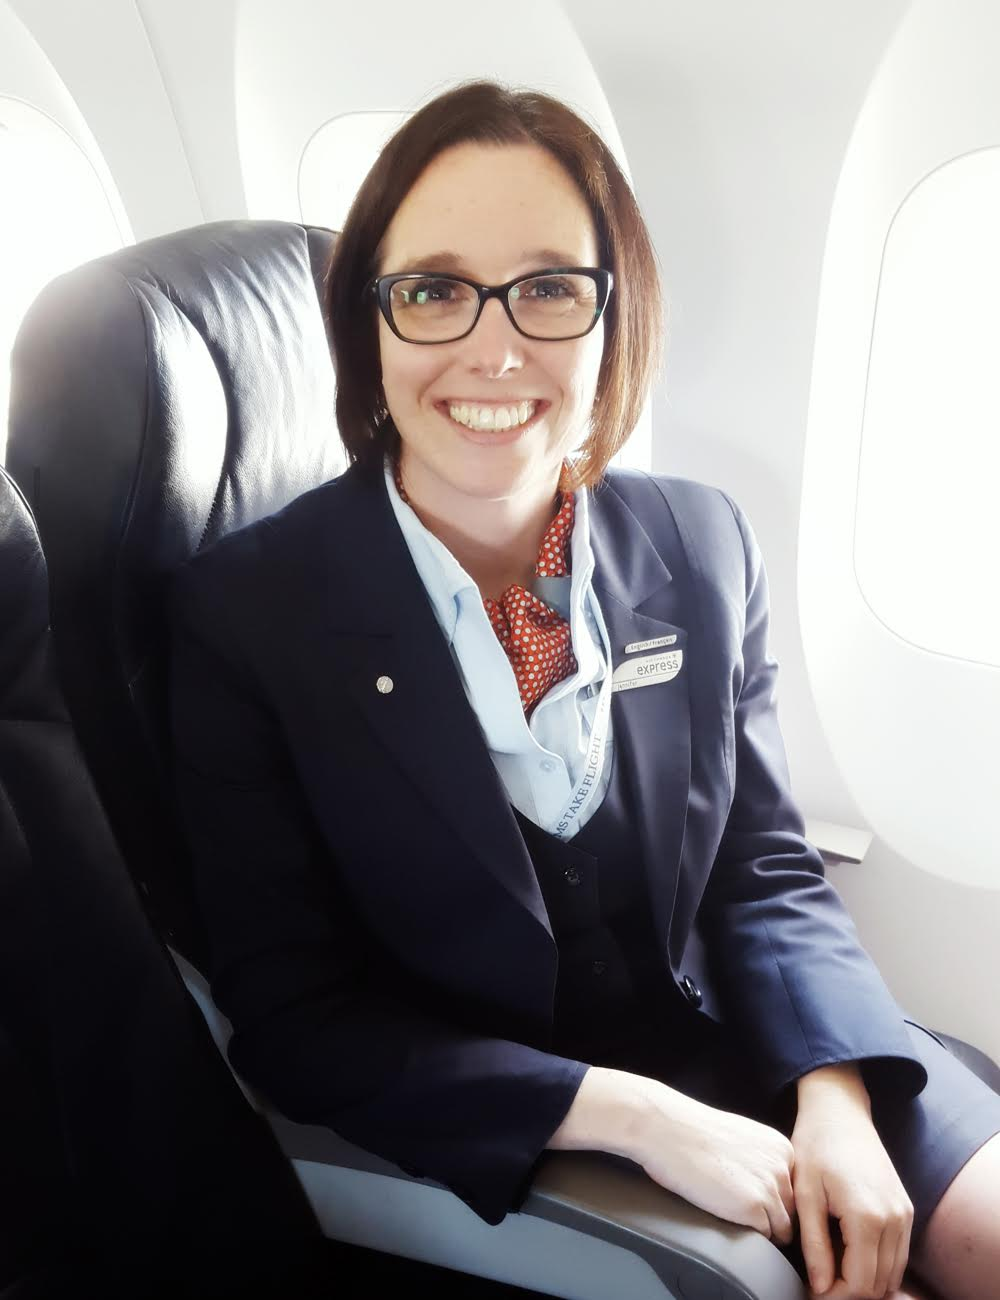 Flight attendant seated on aircraft.